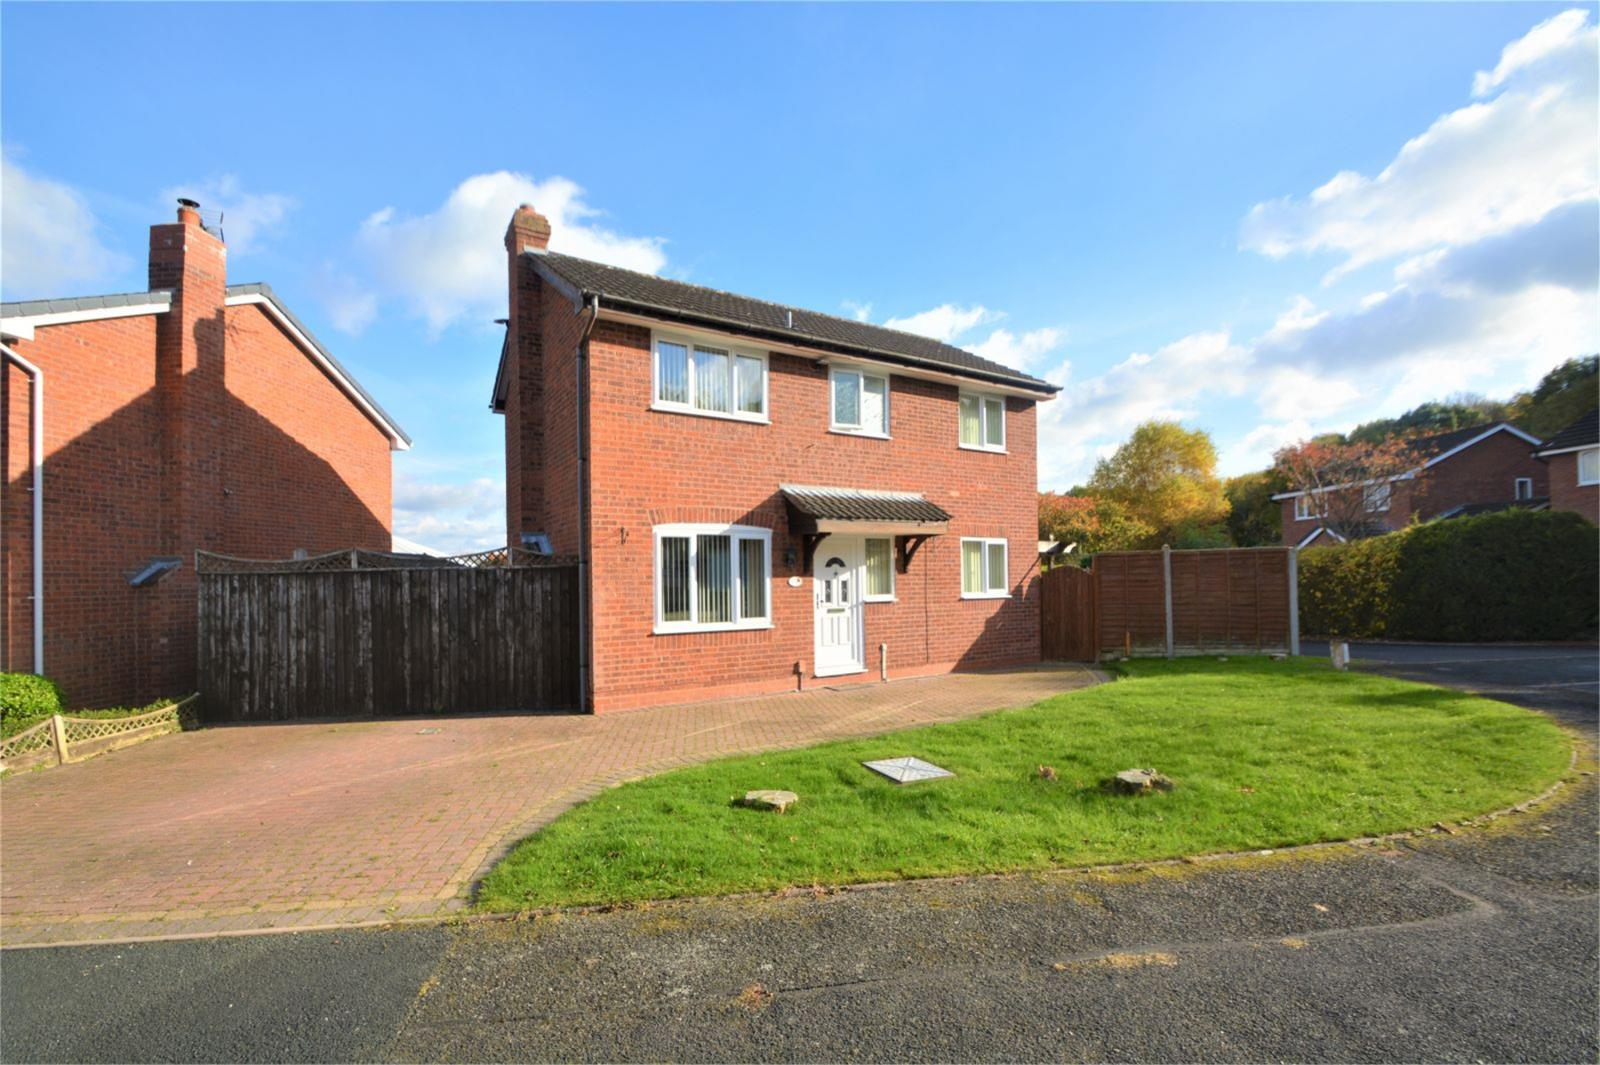 3 Bedrooms Detached House for sale in 9 Madeley Wood View, Madeley, Telford, Shropshire, TF7